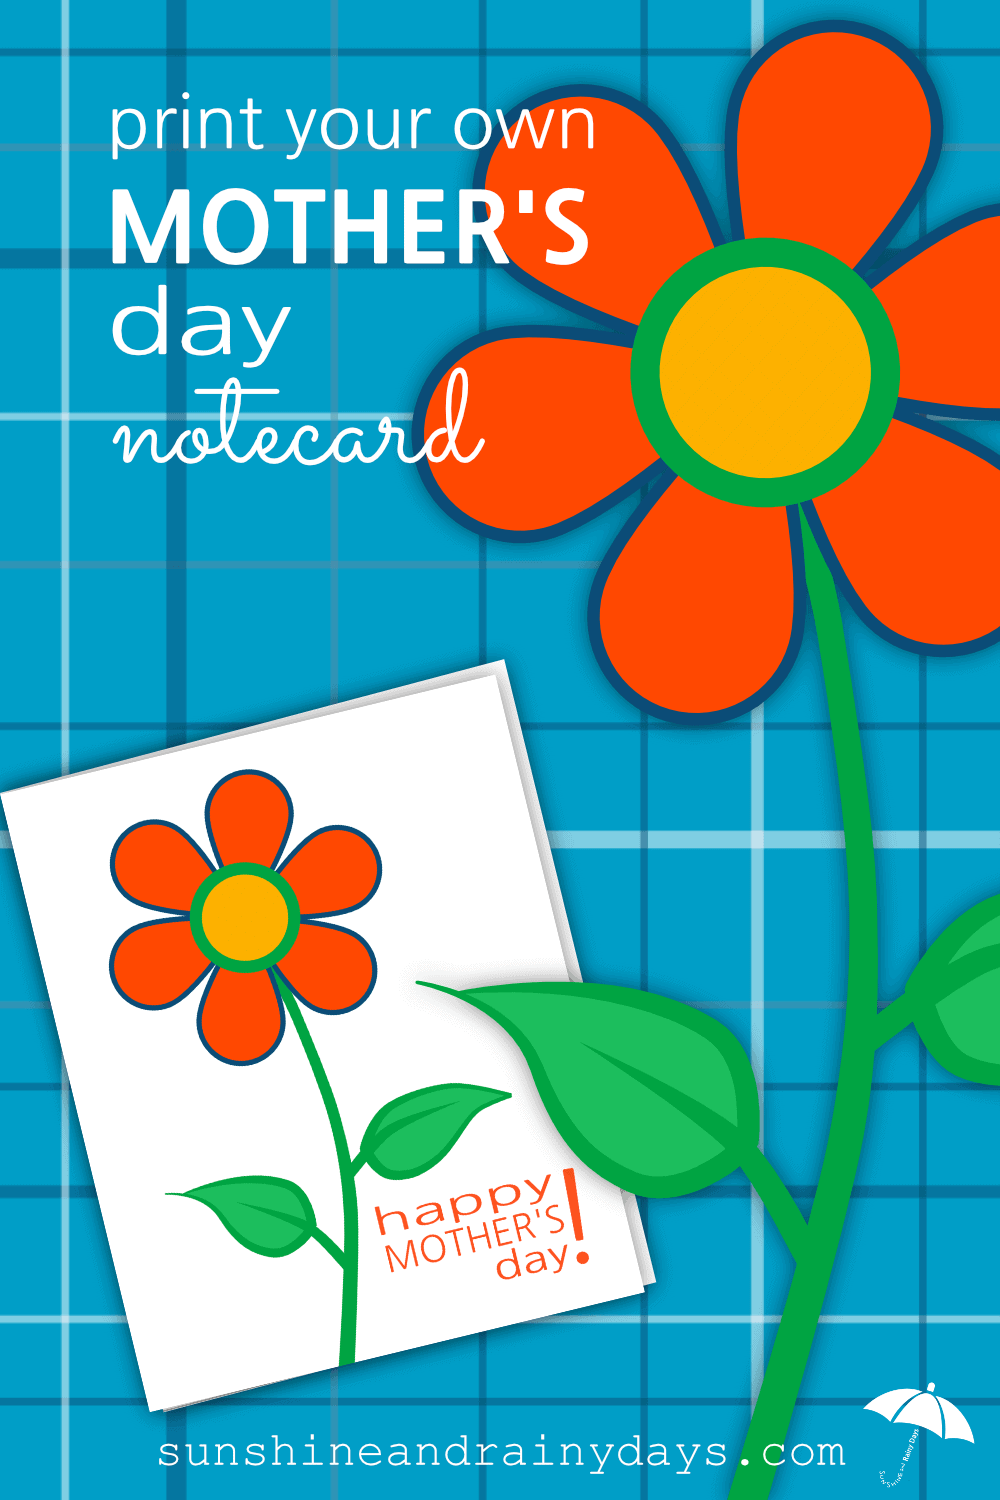 Do you want to spend your Mother's Day budget on the gift and not the card? You're in luck! We have created a Mother's Day FREE Printable Notecard just for you! Woot! Woot! #MothersDay #MothersDayNotecard #SARD #sunshineandrainydays